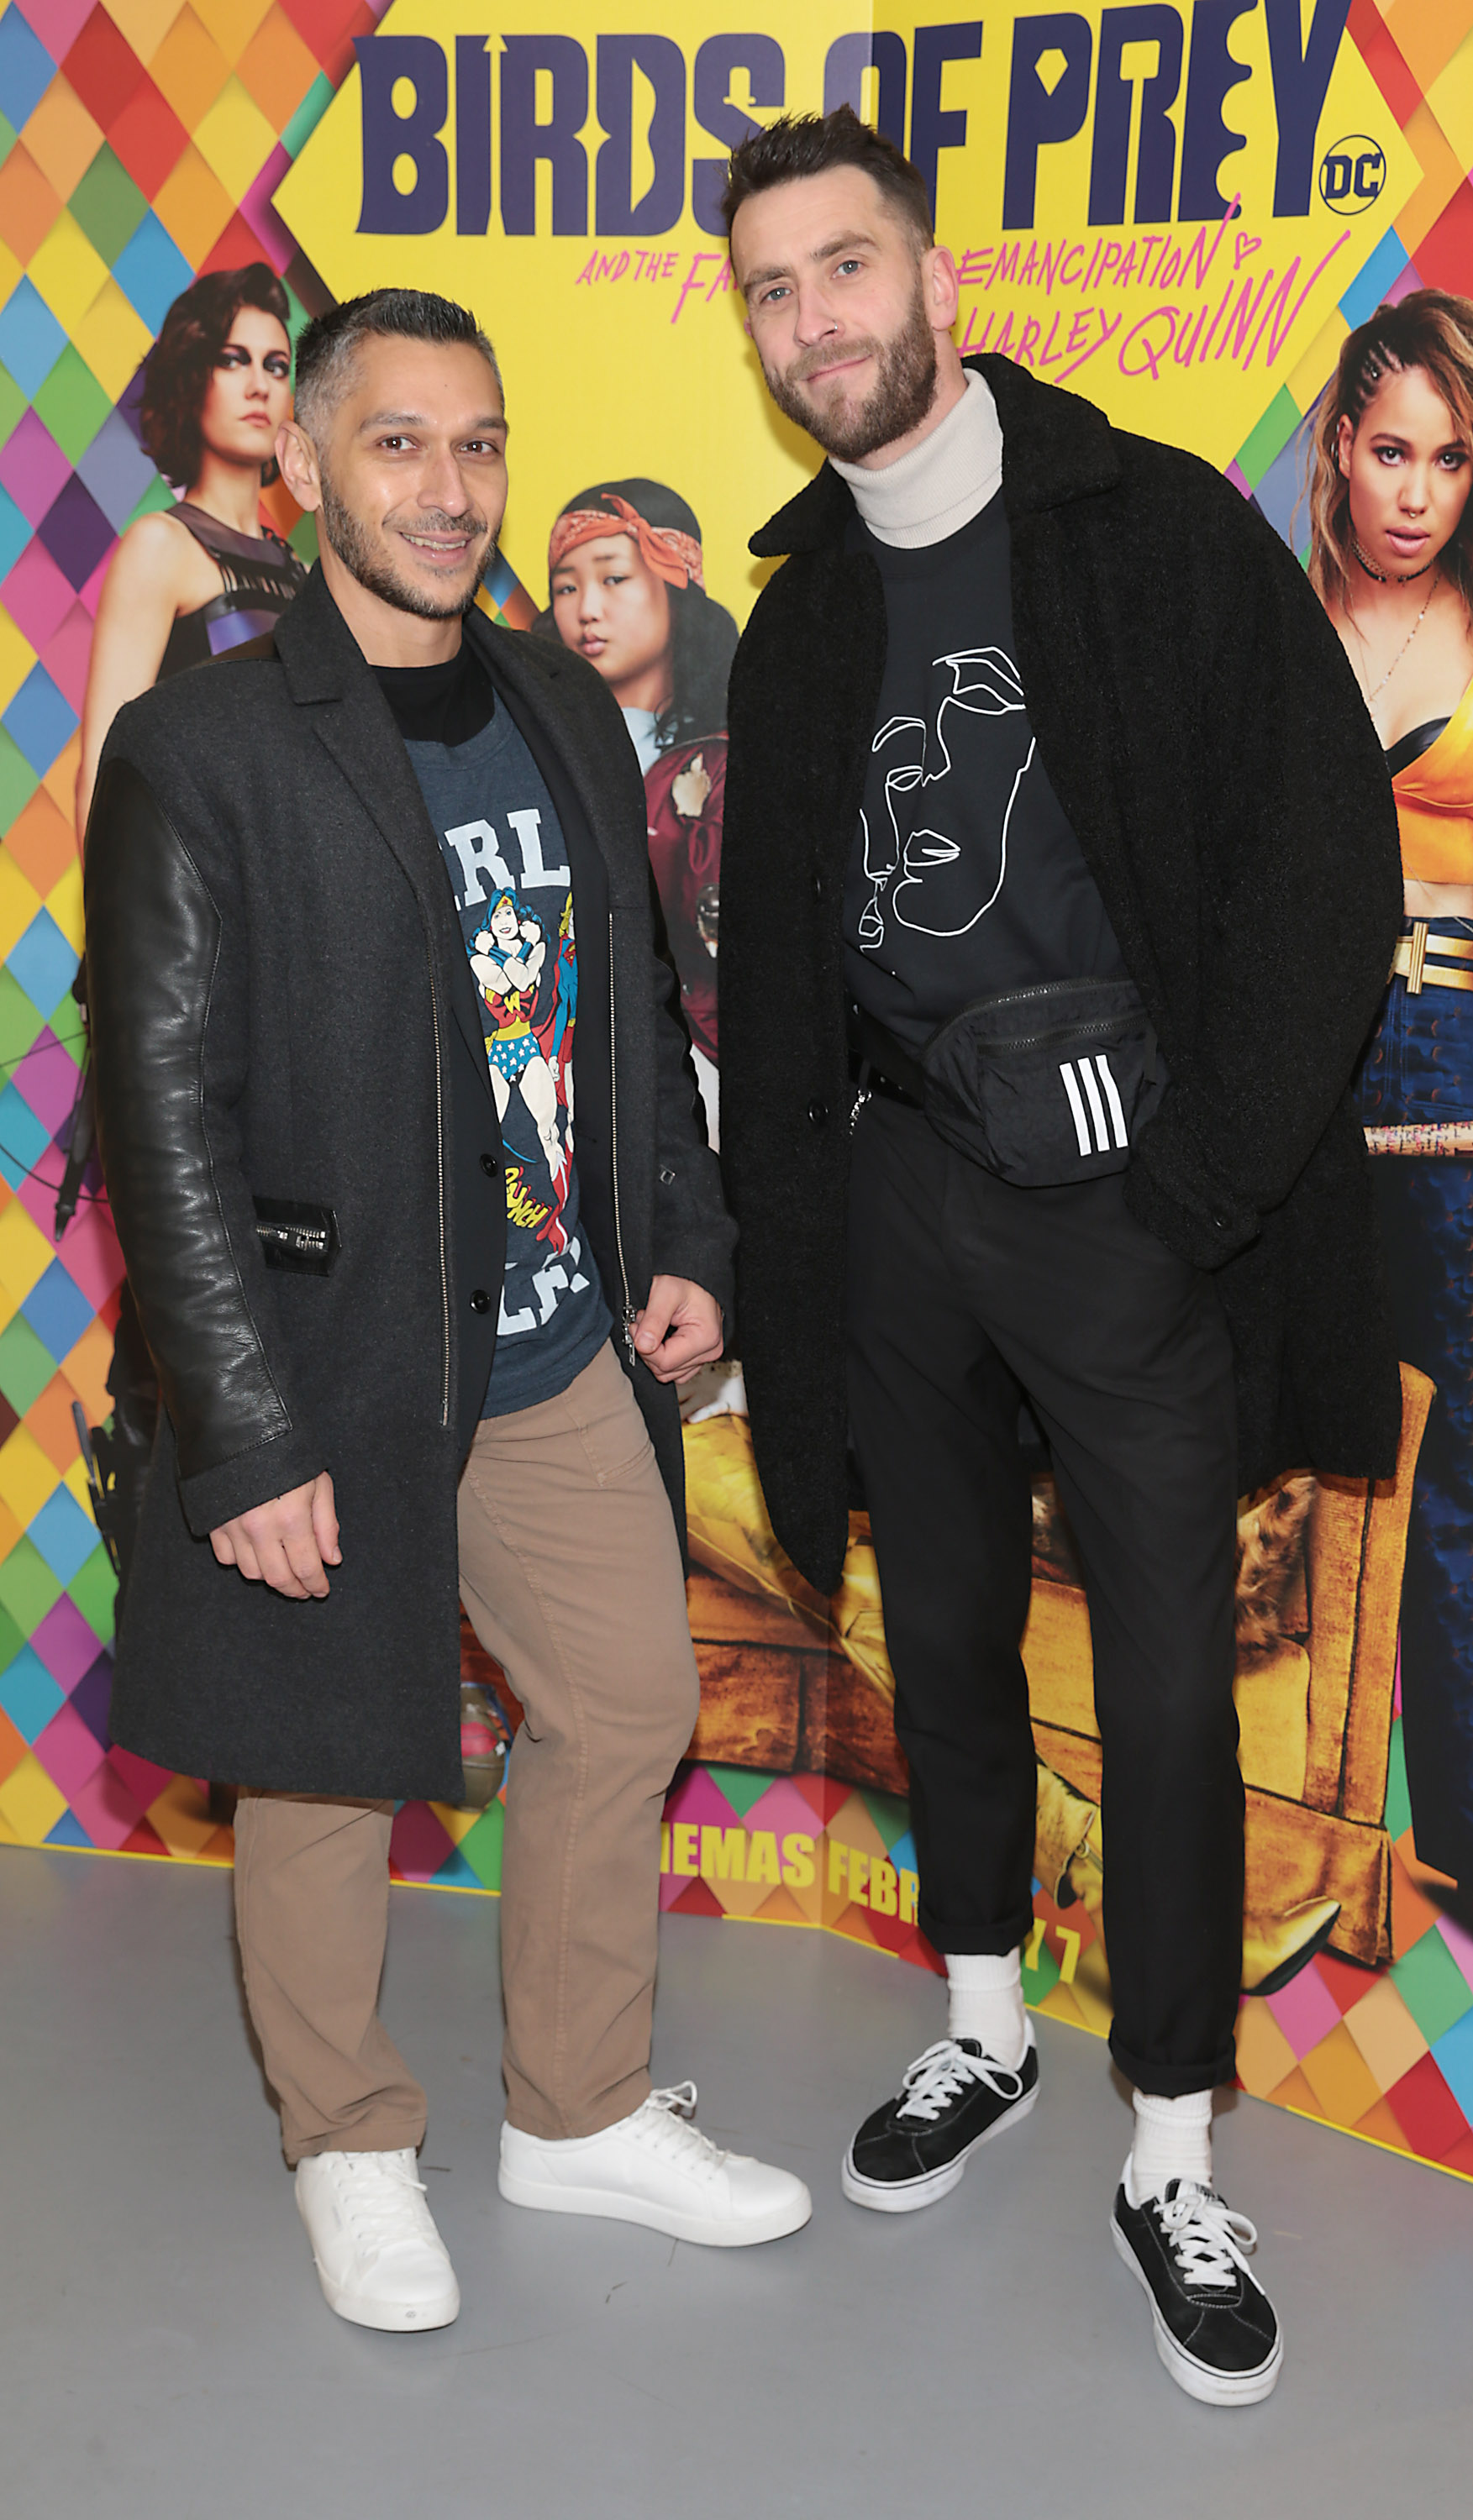 James Zahman and Ian Banham at the special preview screening of Birds of Prey at the Lighthouse Cinema, Dublin. Pic: Brian McEvoy